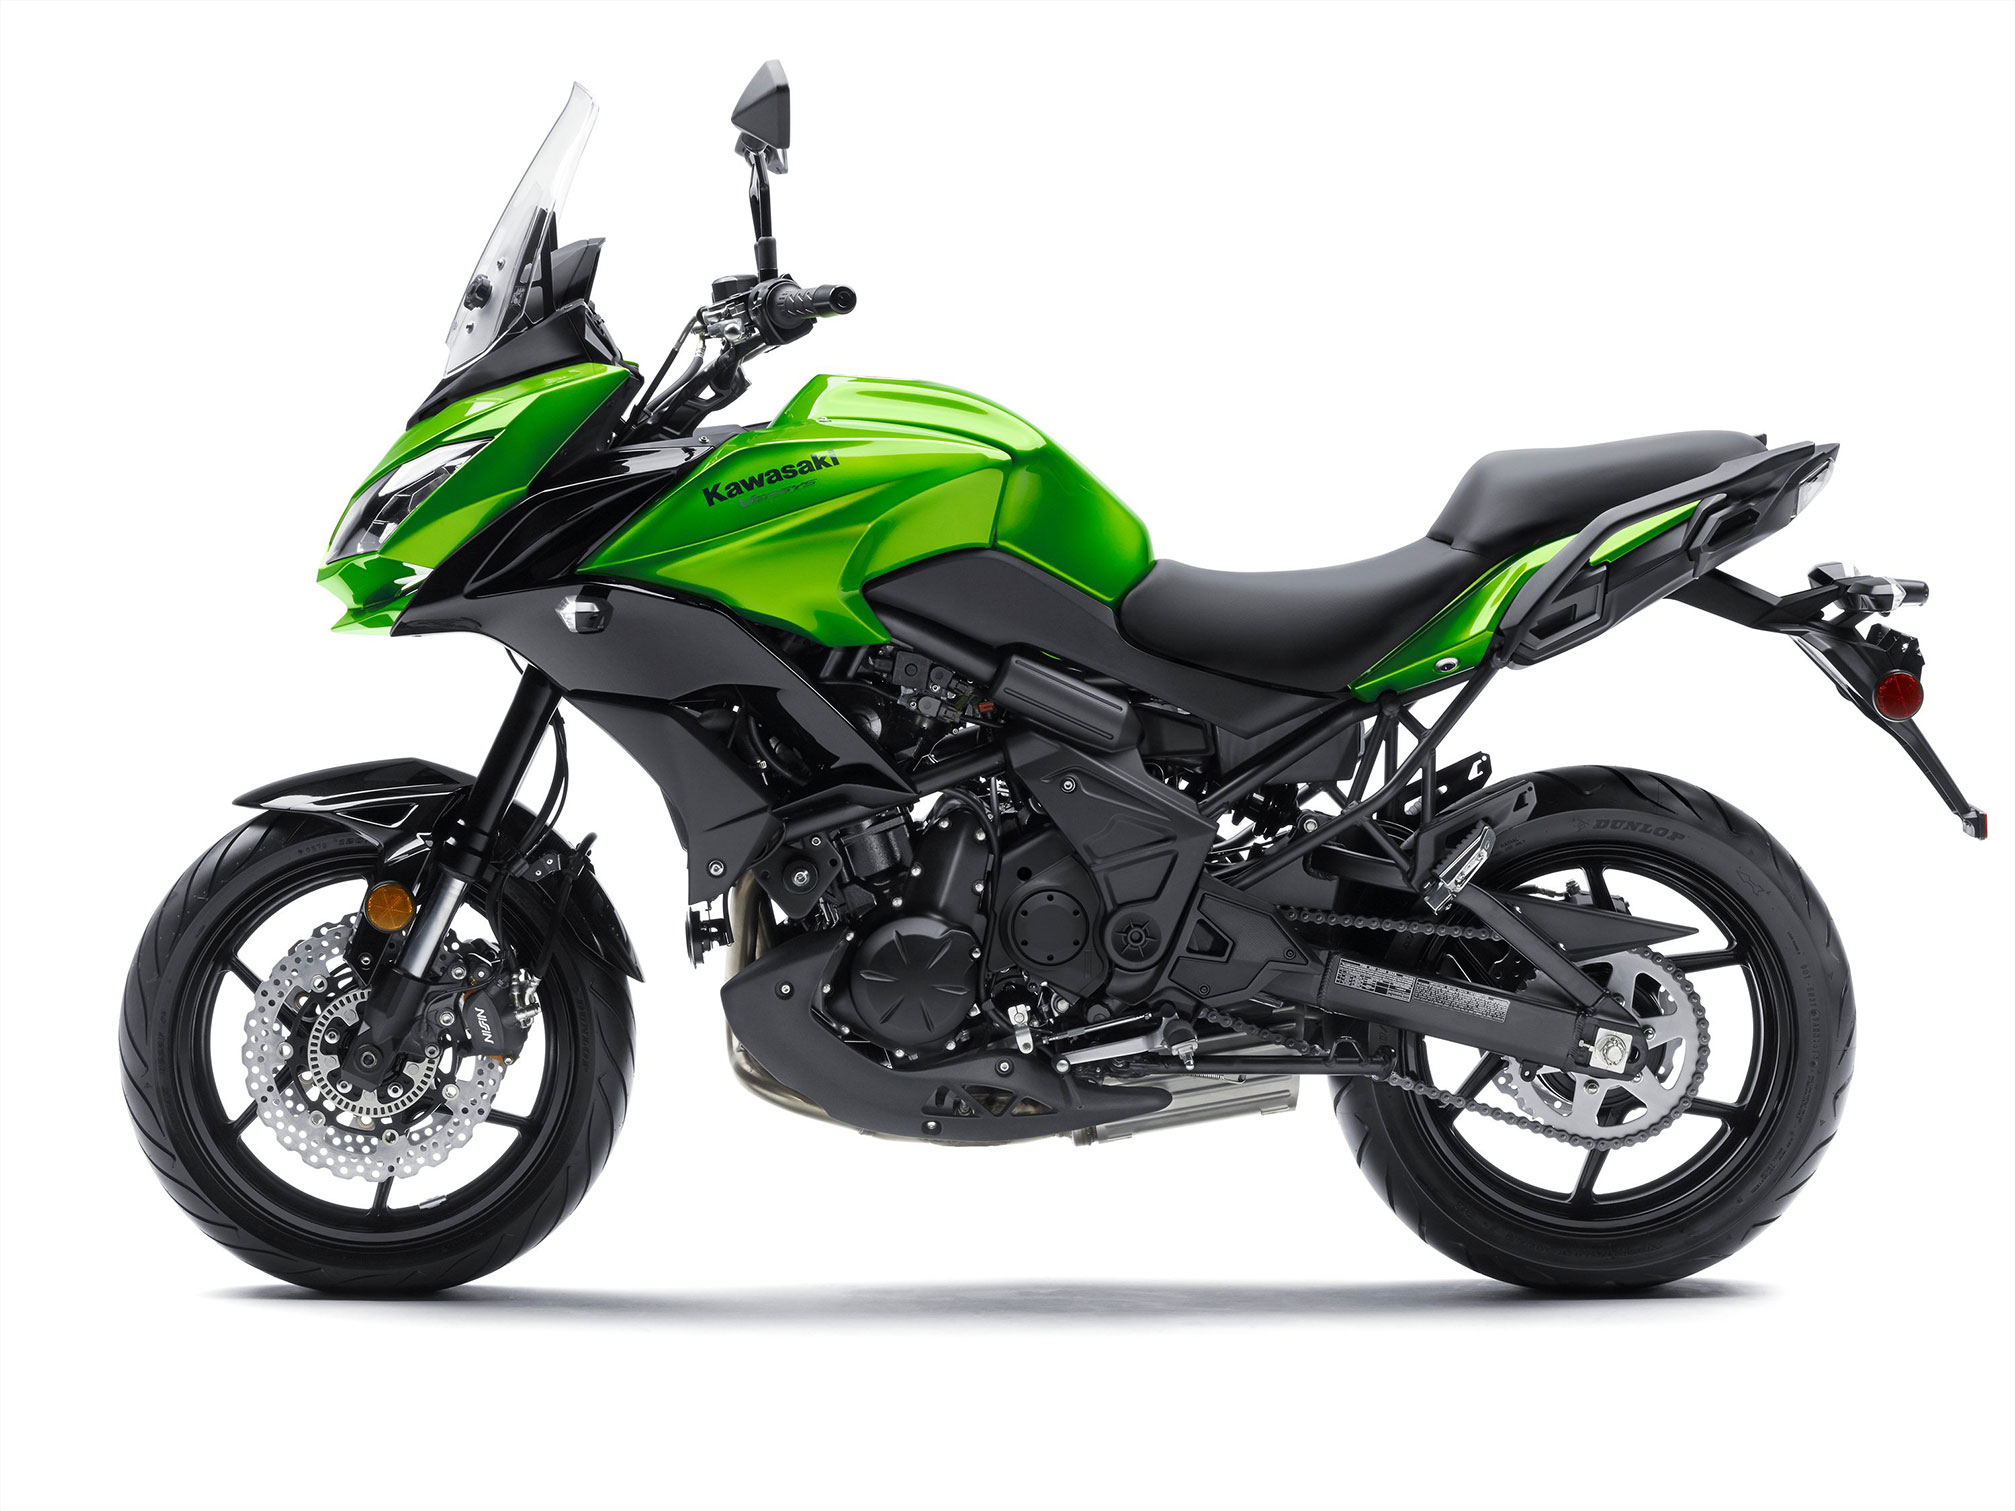 kawasaki versys 650 abs specs 2014 2015 2016 autoevolution. Black Bedroom Furniture Sets. Home Design Ideas